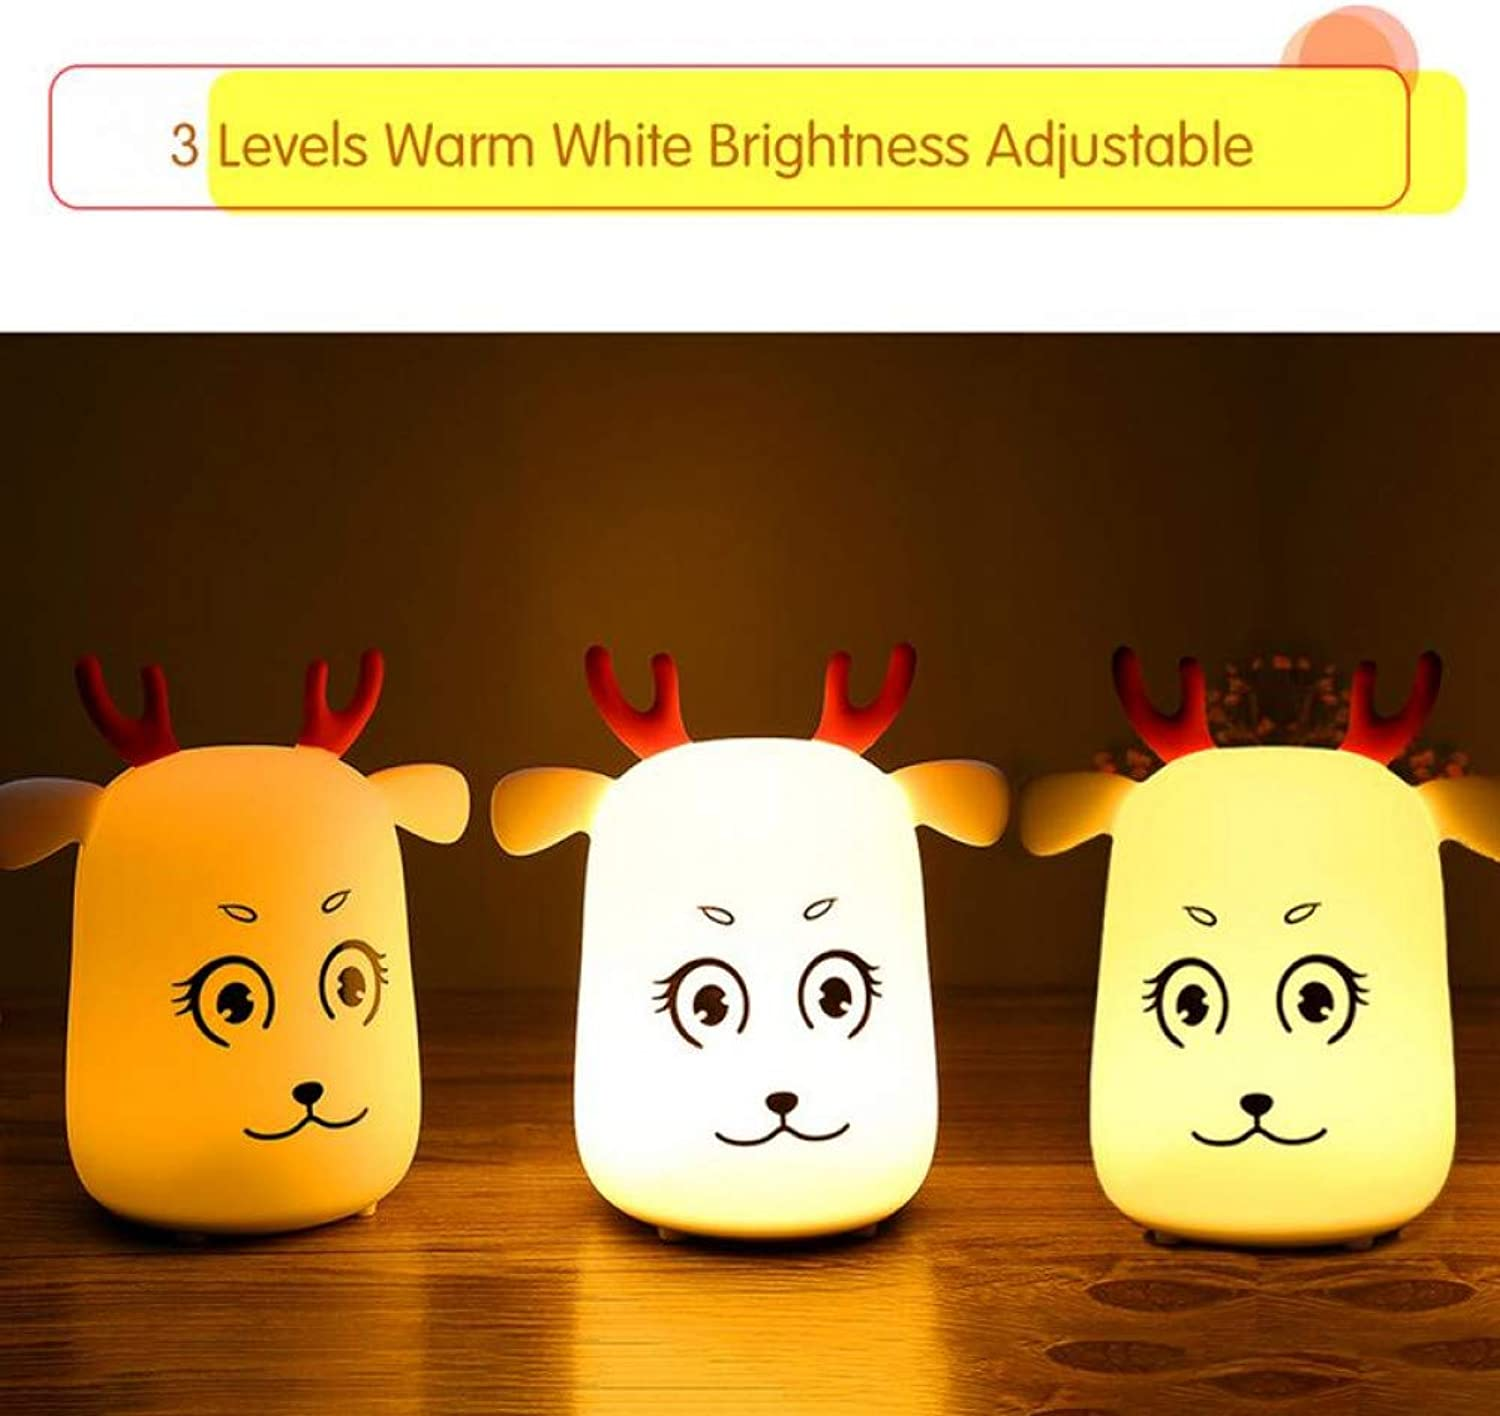 KKXXYD USB Night Light Charging Portable Cute Deer Silicone Lamp Living Room Bedroom Creative colorful Night Light Baby Bed Pat Light